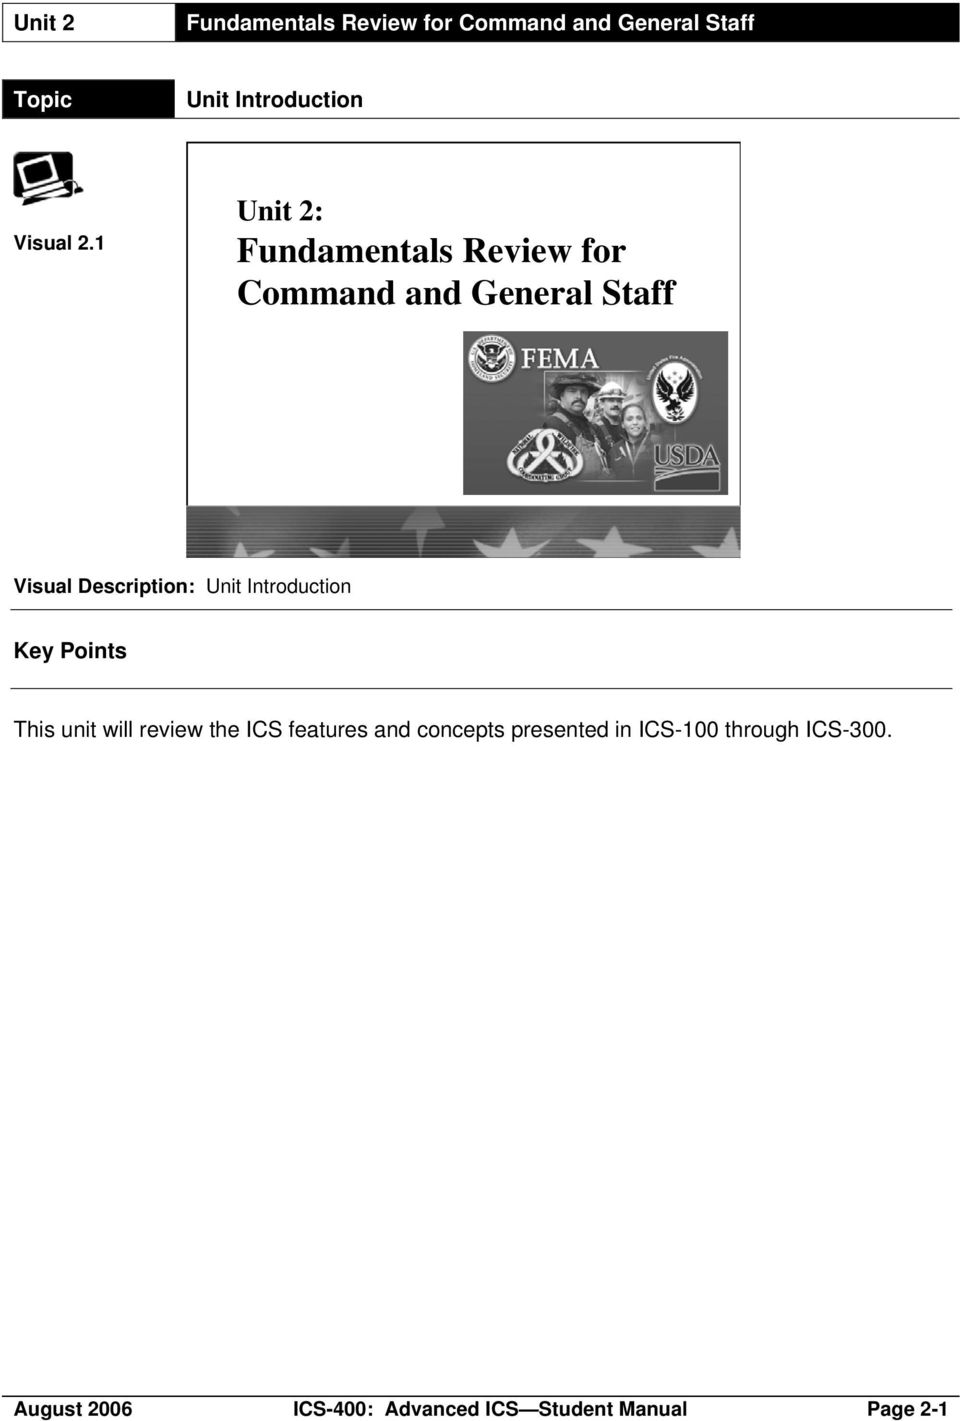 ICS-400: Advanced ICS for Command and General Staff, Complex